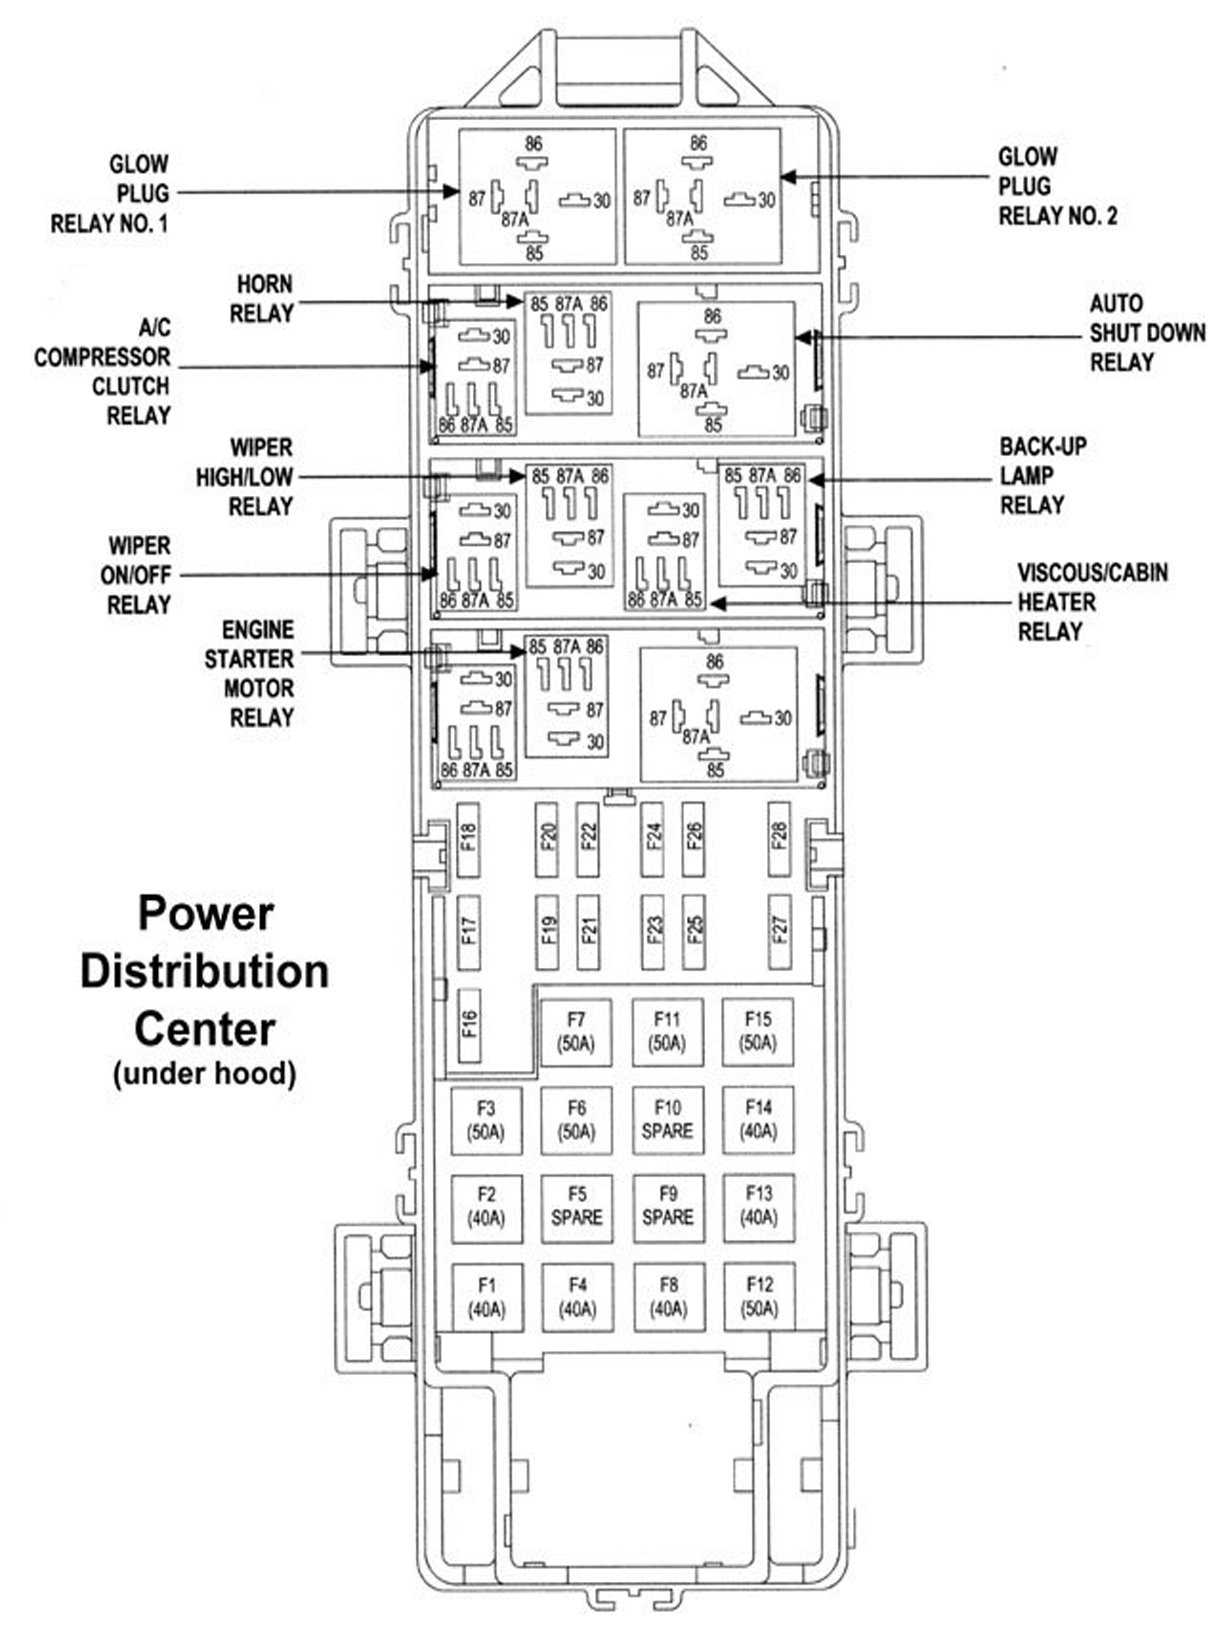 [DIAGRAM_5FD]  DIAGRAM] 2002 Jeep Grand Cherokee Fuse Box Diagram FULL Version HD Quality  Box Diagram - DIAGRAMSYS.UNICEFFLAUBERT.FR | 2002 Grand Cherokee Fuse Box |  | Diagram Database